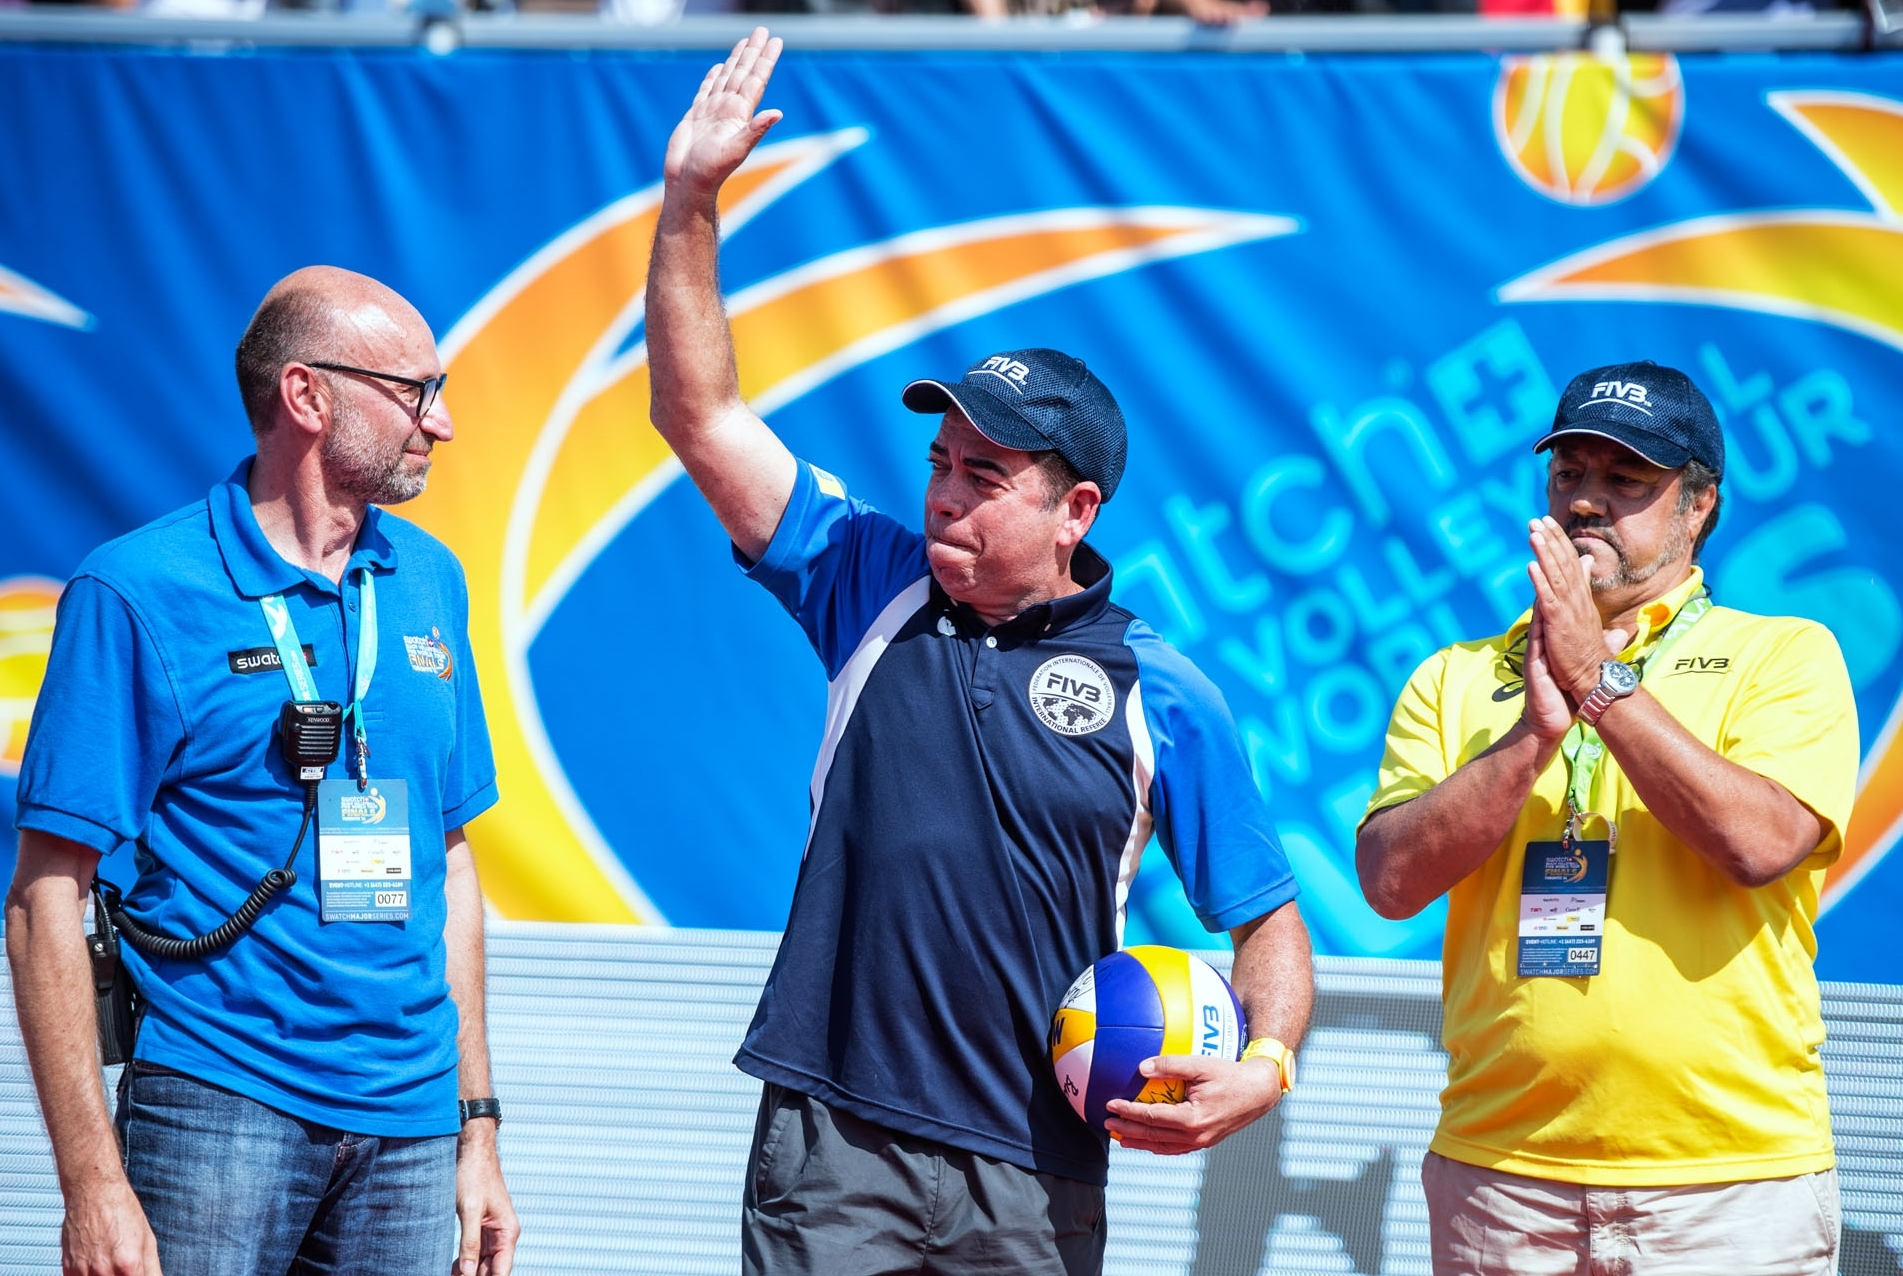 An emotional Elzir says his goodbyes in Toronto, watched on by FIVB Refereeing Commissioner Jose Casanova (right). Photocredit: Mihai Stetcu.